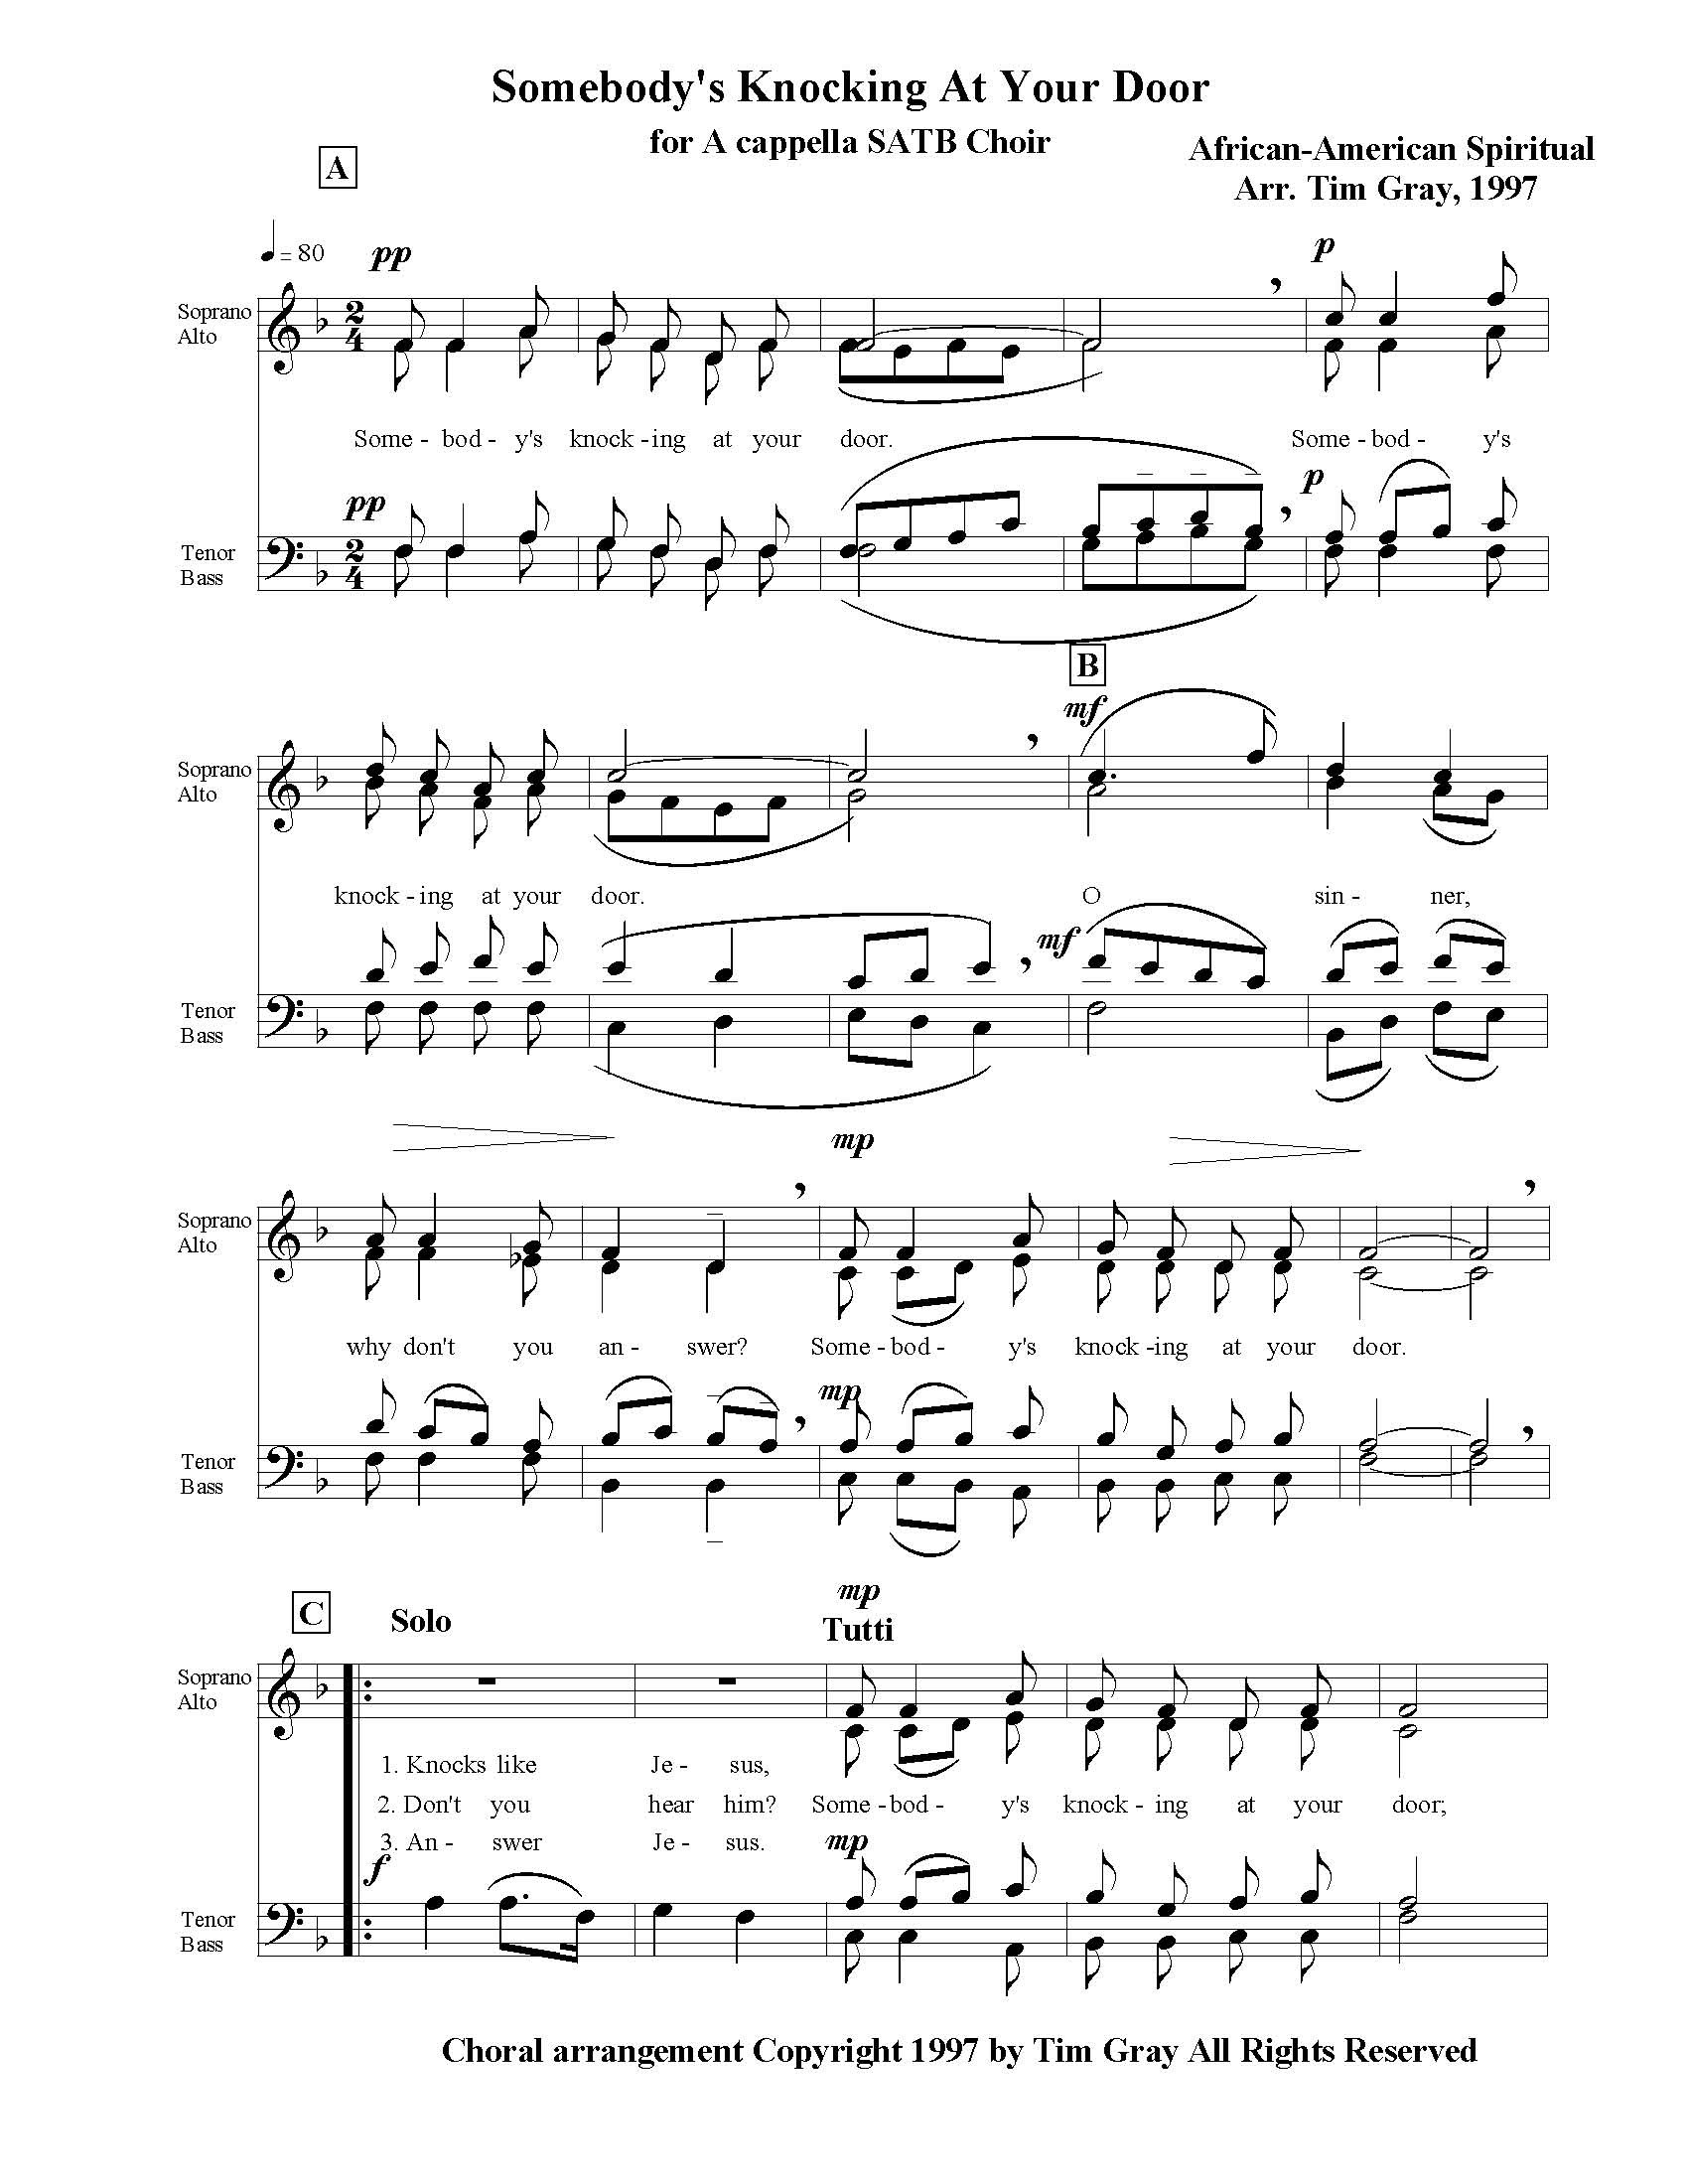 Somebody's Knocking at Your Door for SATB Choir sample page at HonoringGodMusic.com